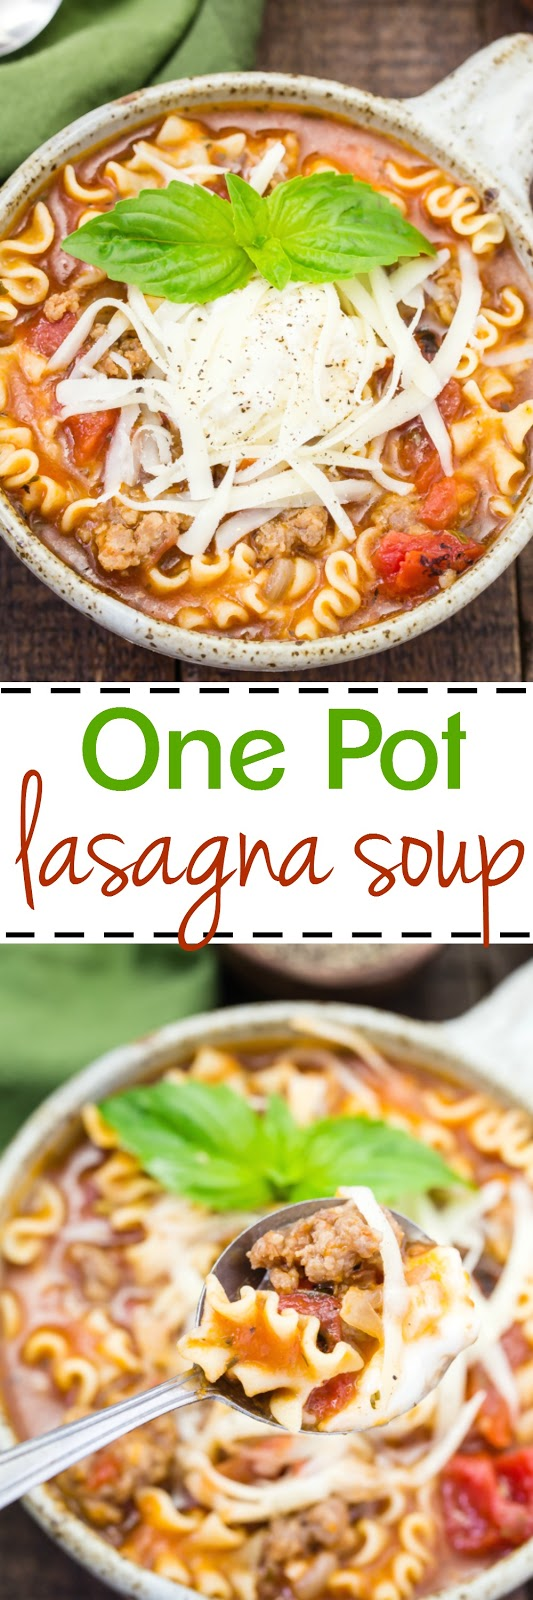 If you love lasagna, you will love this soup.  Easy to make with all that lasagna taste without all the work made in one pot!